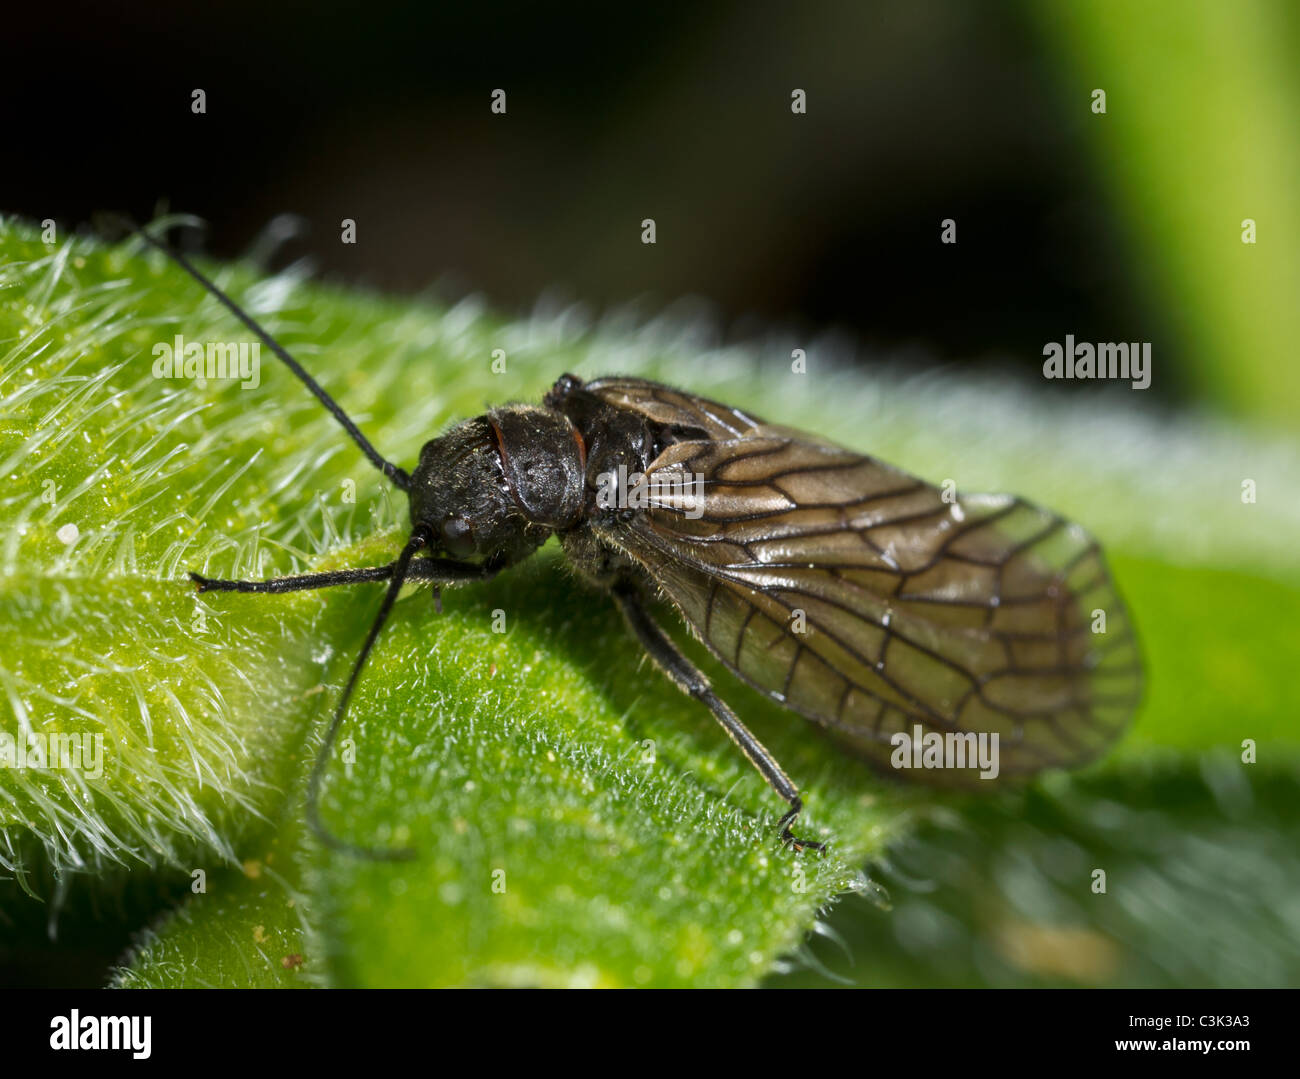 Alder fly (Sialis lutaria), adulte Photo Stock